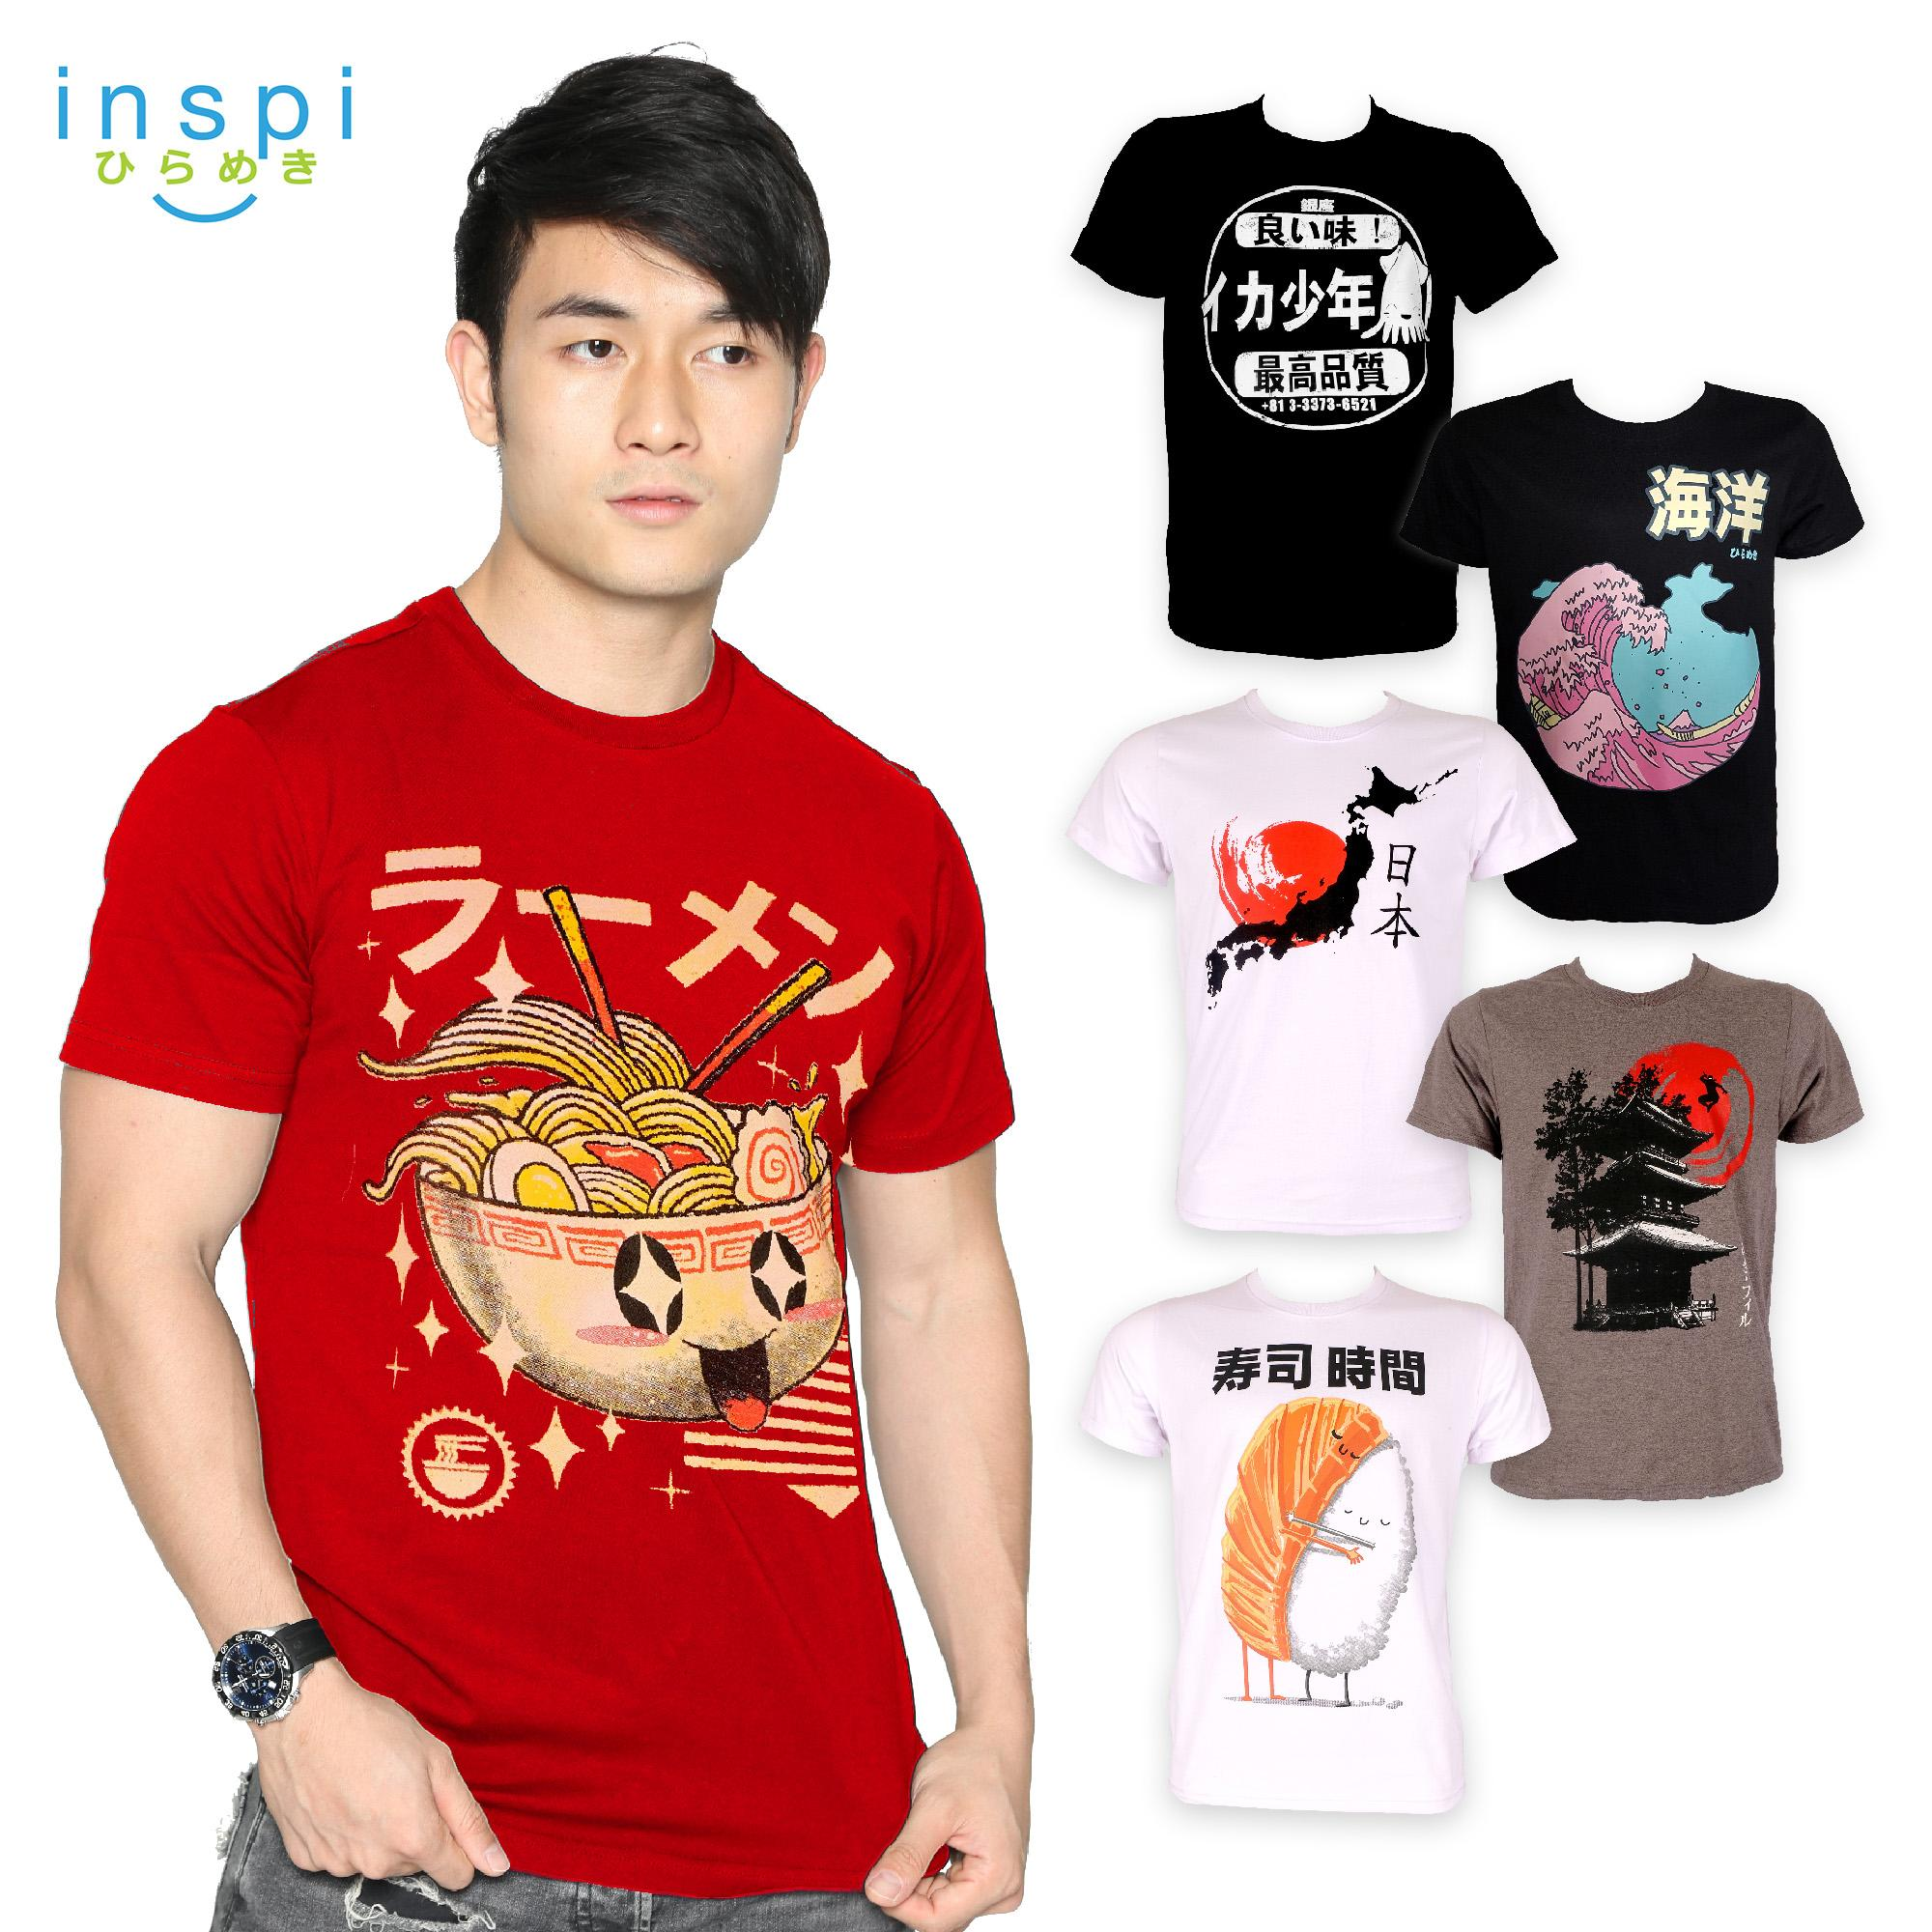 8b9b44934c52 INSPI Tees Nippon Collection tshirt printed graphic tee Mens t shirt shirts  for men tshirts sale